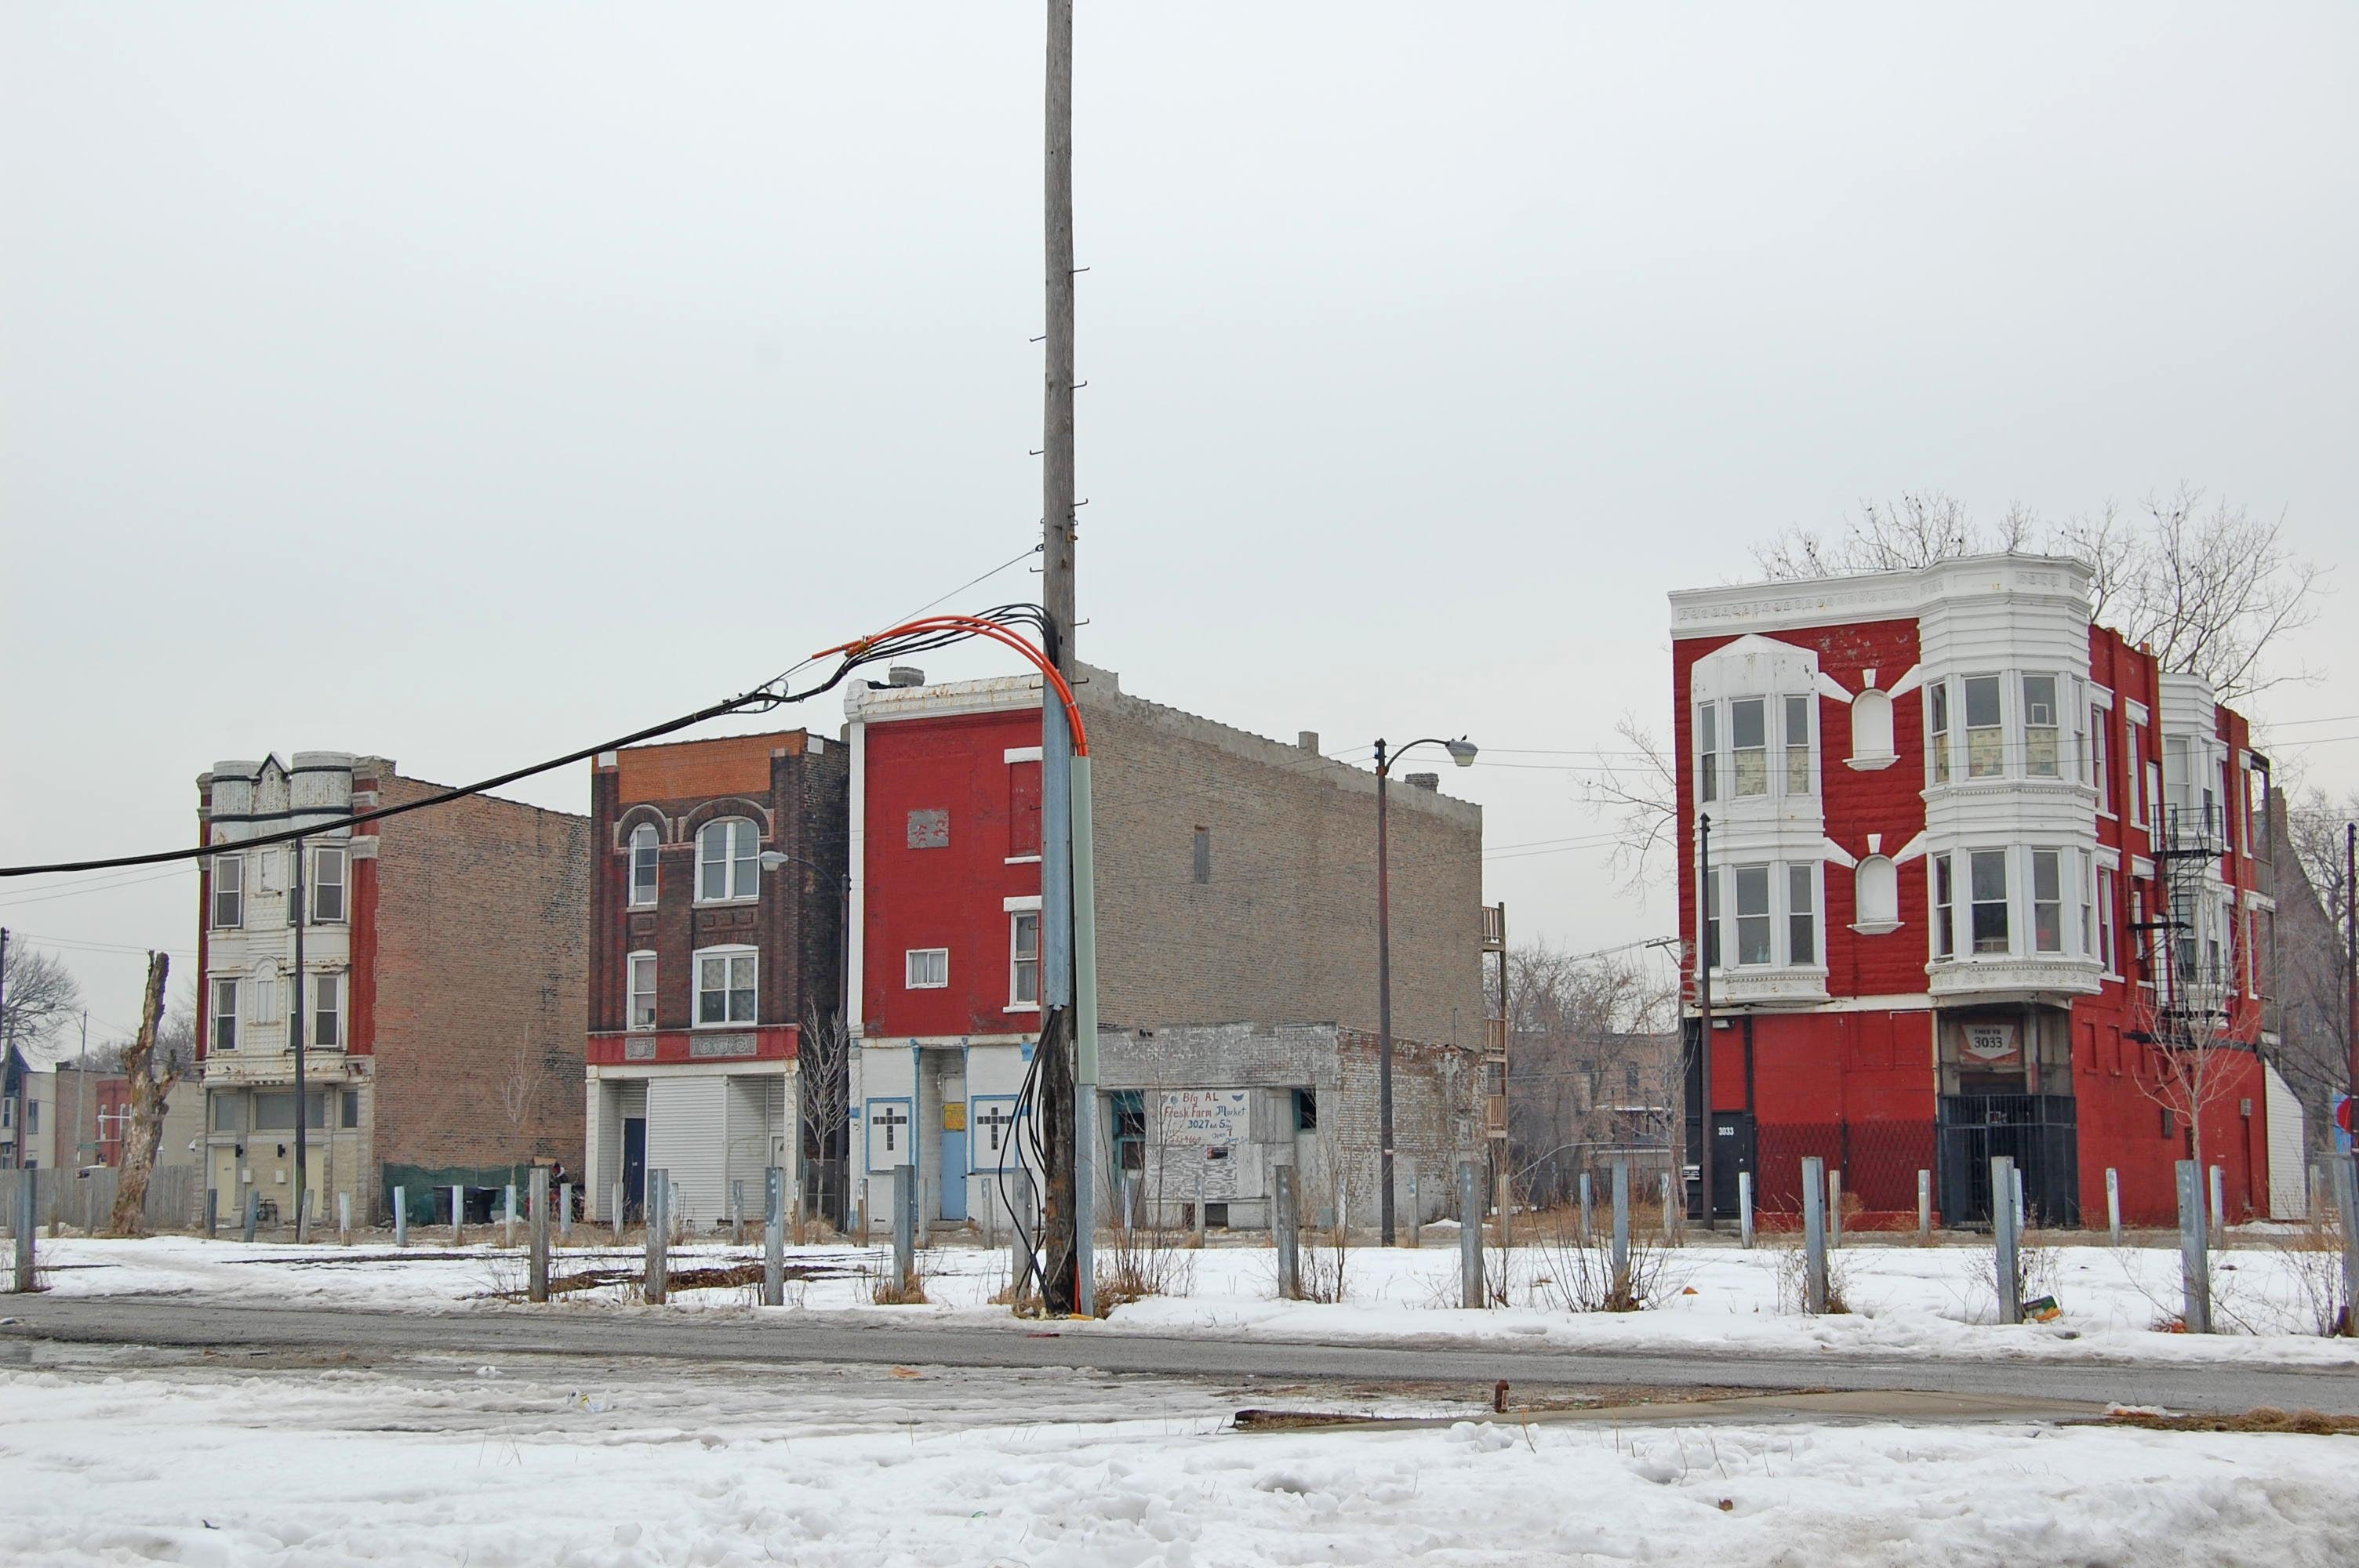 East Garfield Park, near Fifth Ave and Monroe St